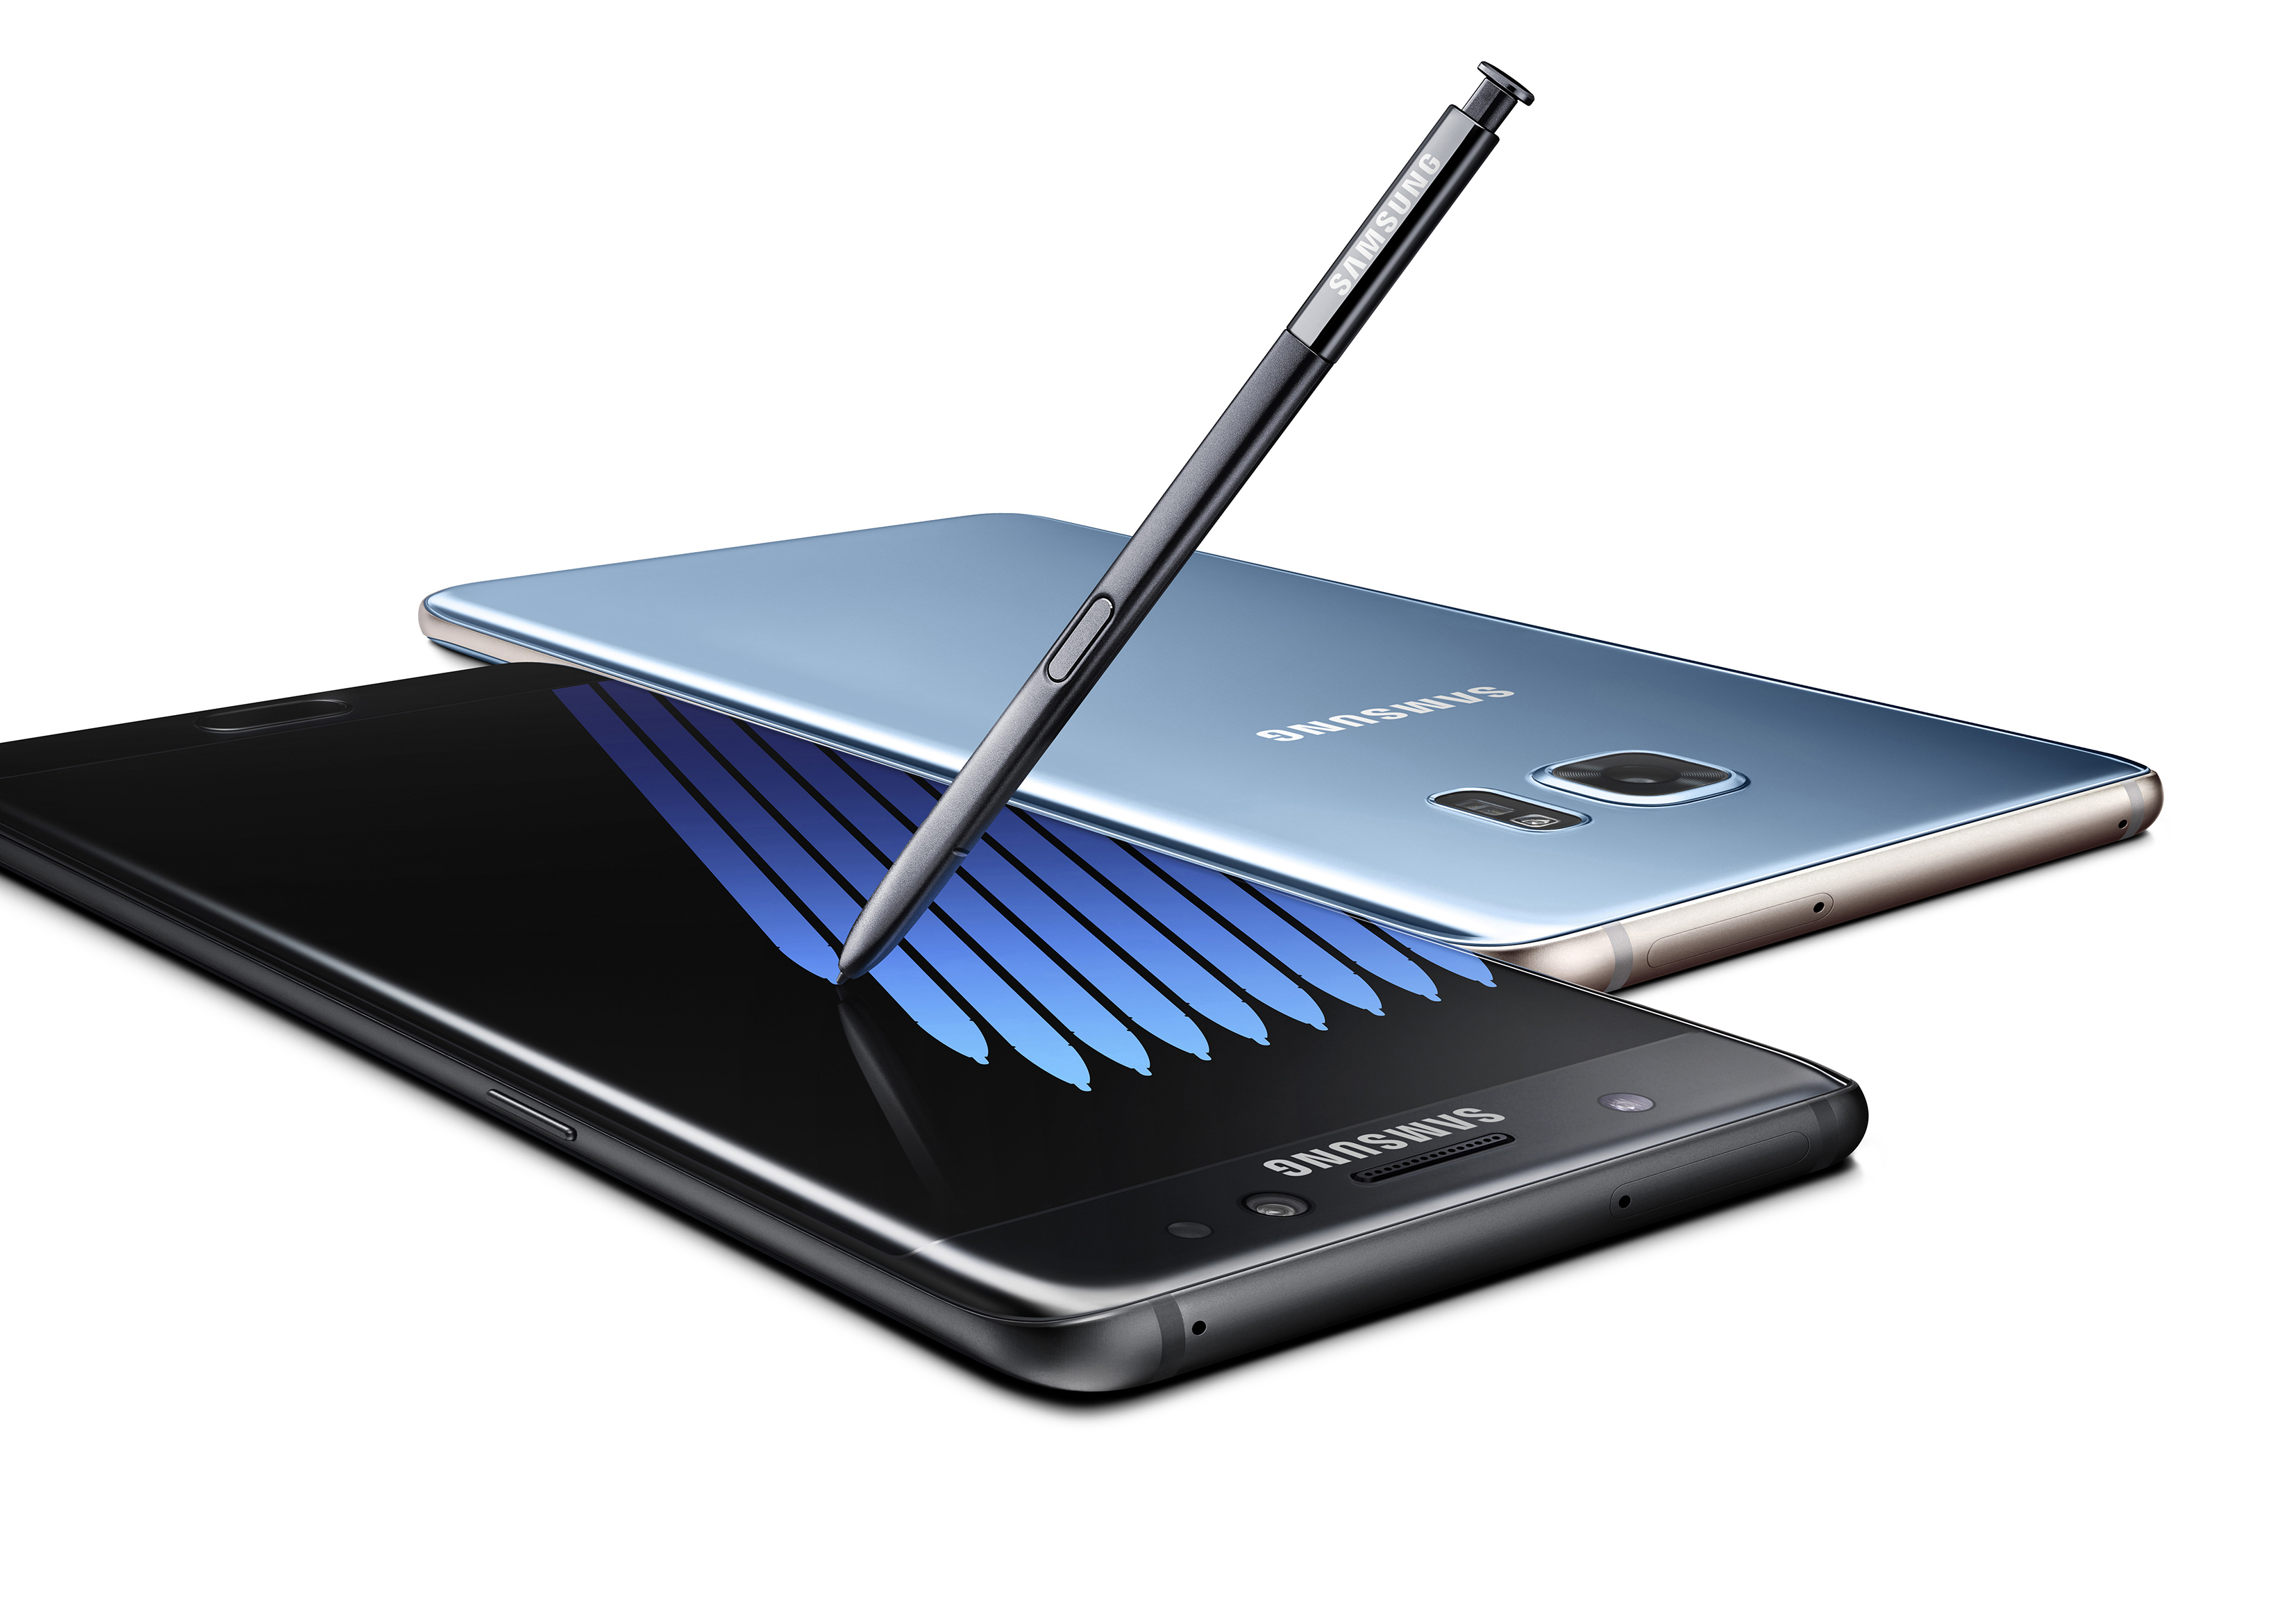 Samsung Galaxy Note 7 Owners Report Phone Exchange Program